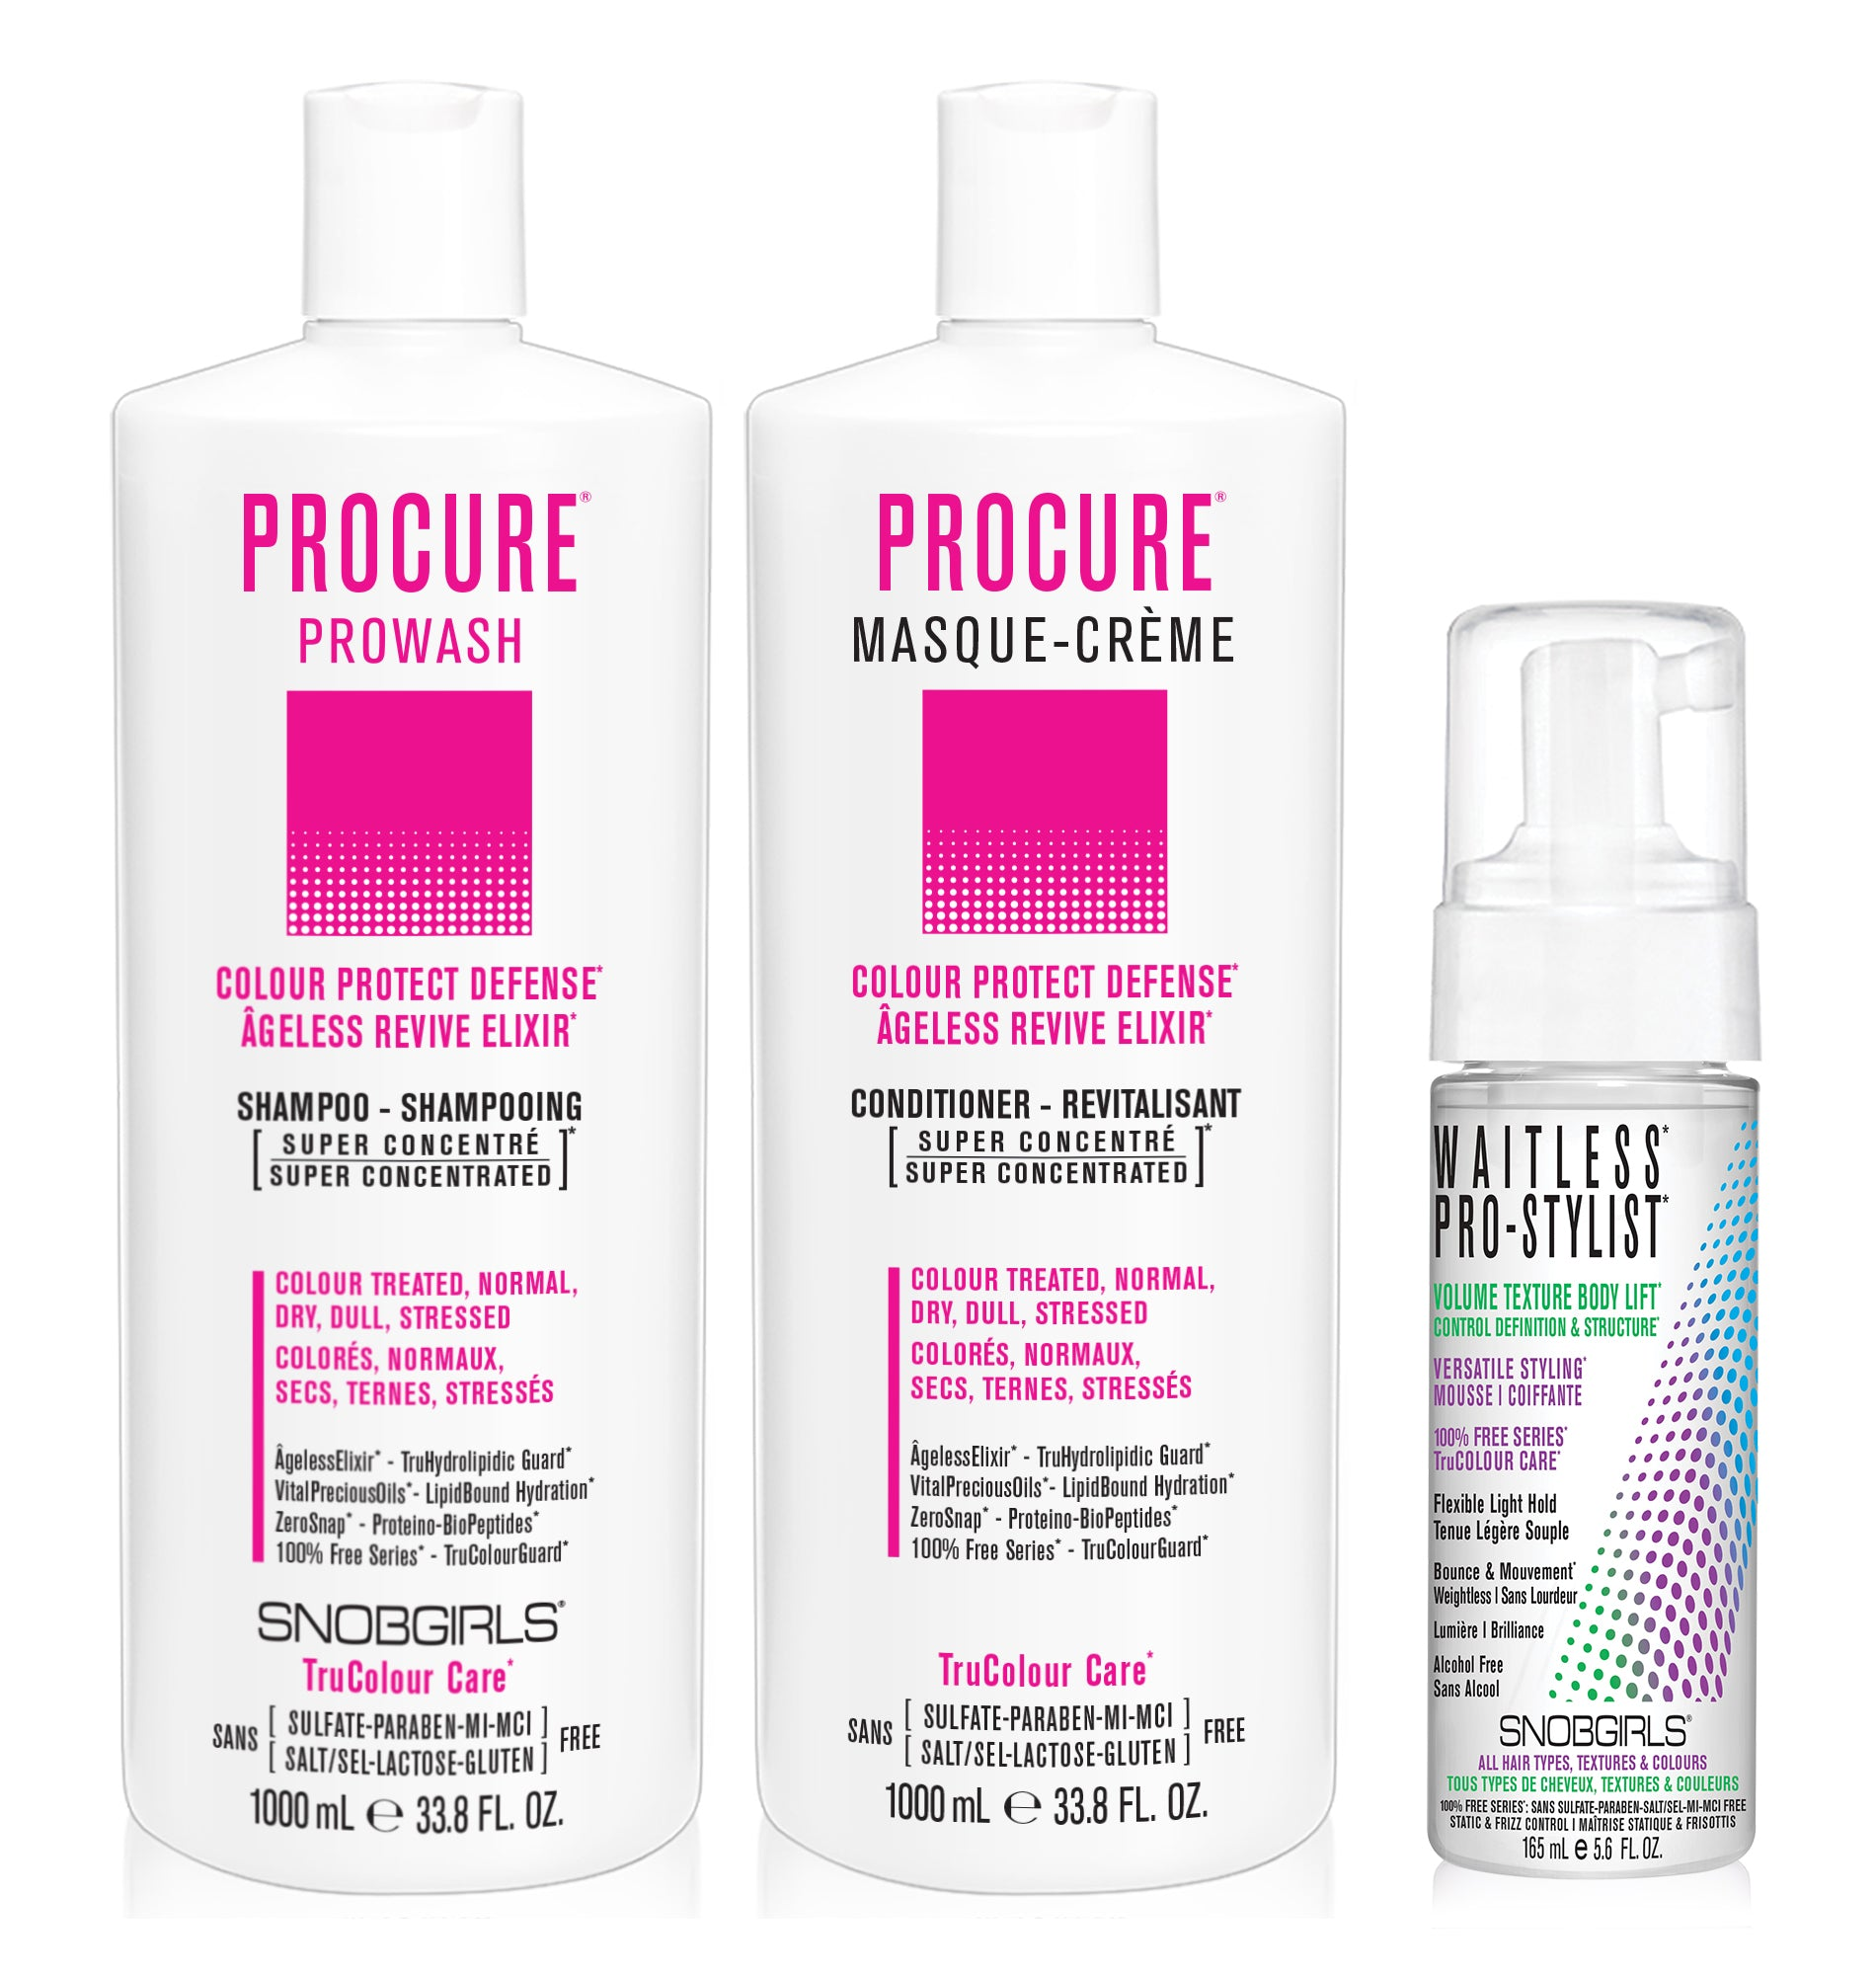 DUO PROCURE Bundle- 1 Shampoo 33.8oz. with 1 Conditioner 33.8oz and 1 Styling Mousse - SNOBGIRLS.com